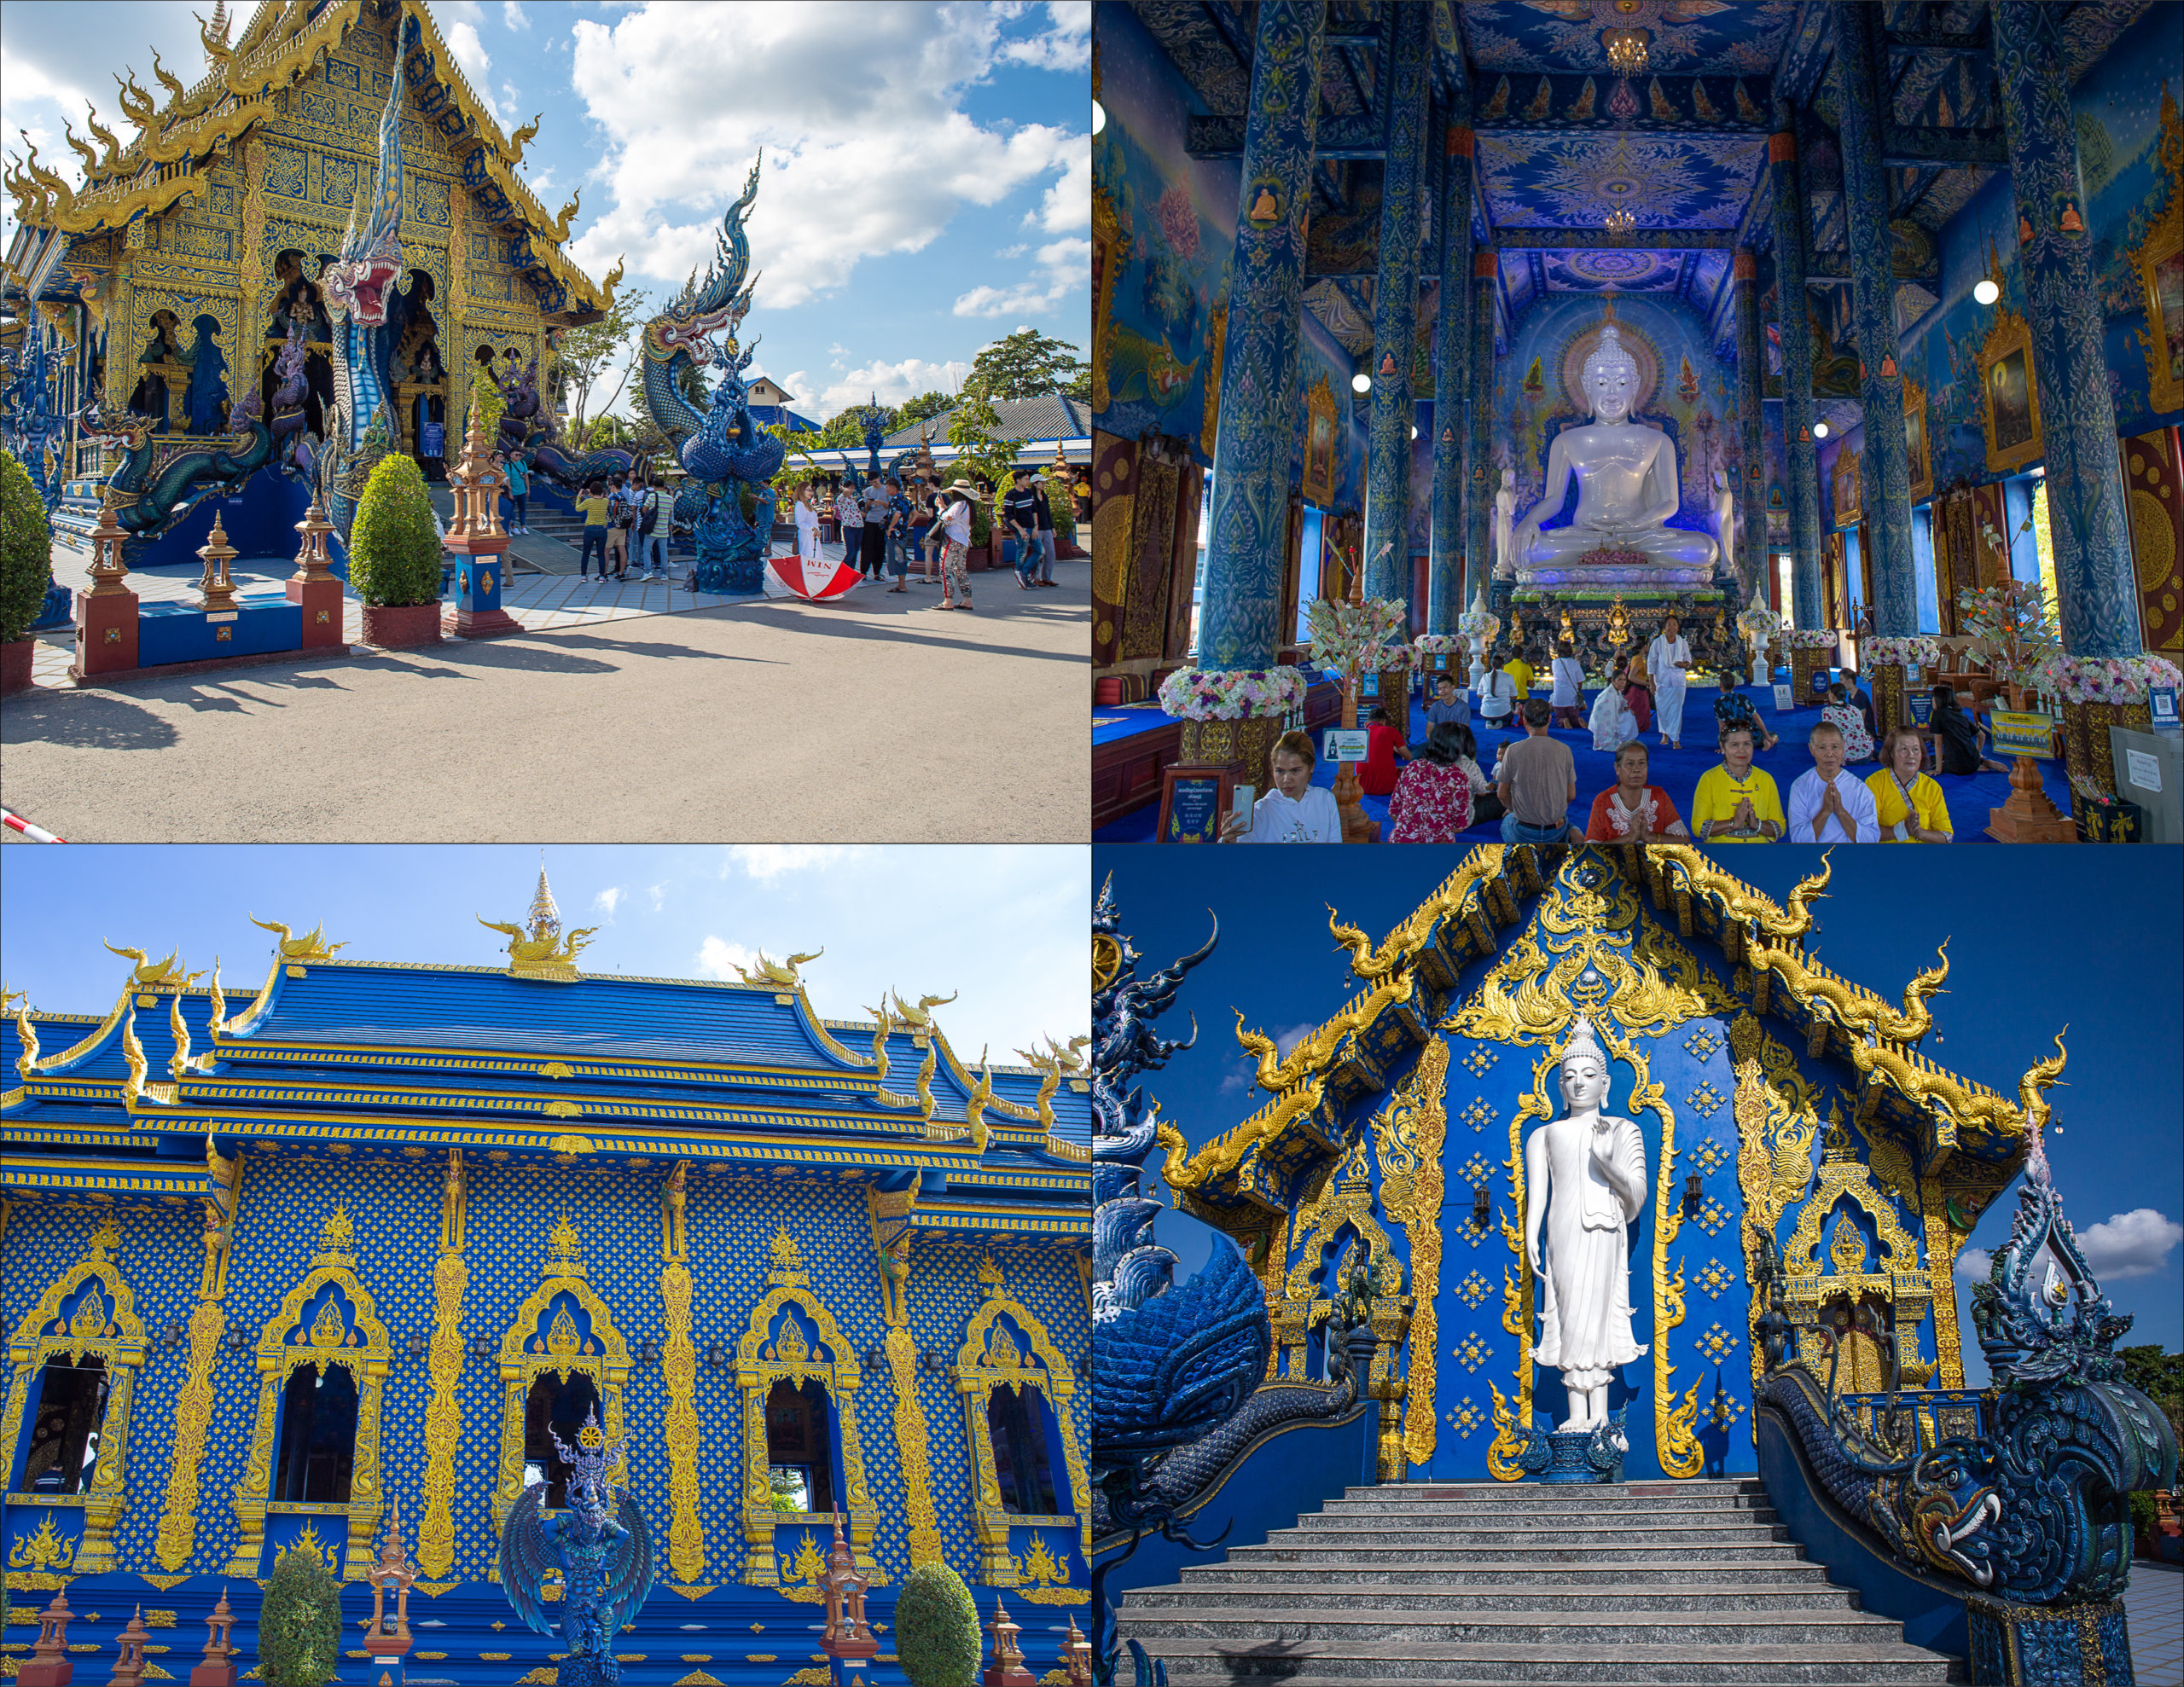 Views of Wat Rong Suea Ten, Chiang Rai